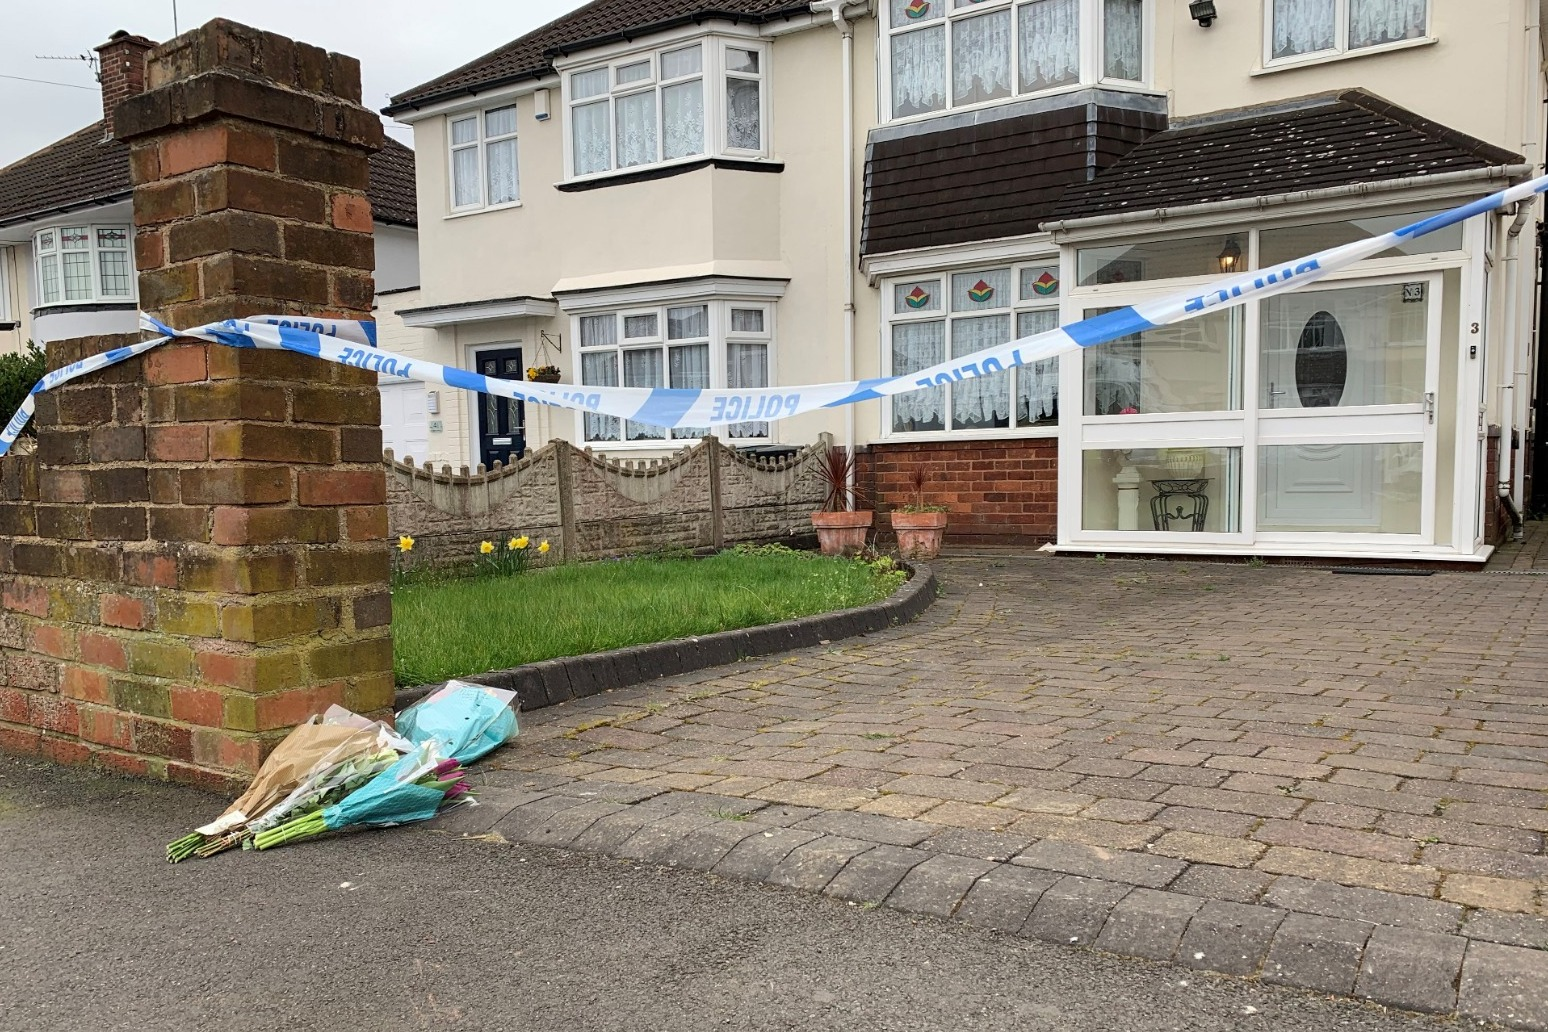 Pensioner killed in 'sustained' garden attack after dogs escaped through fence